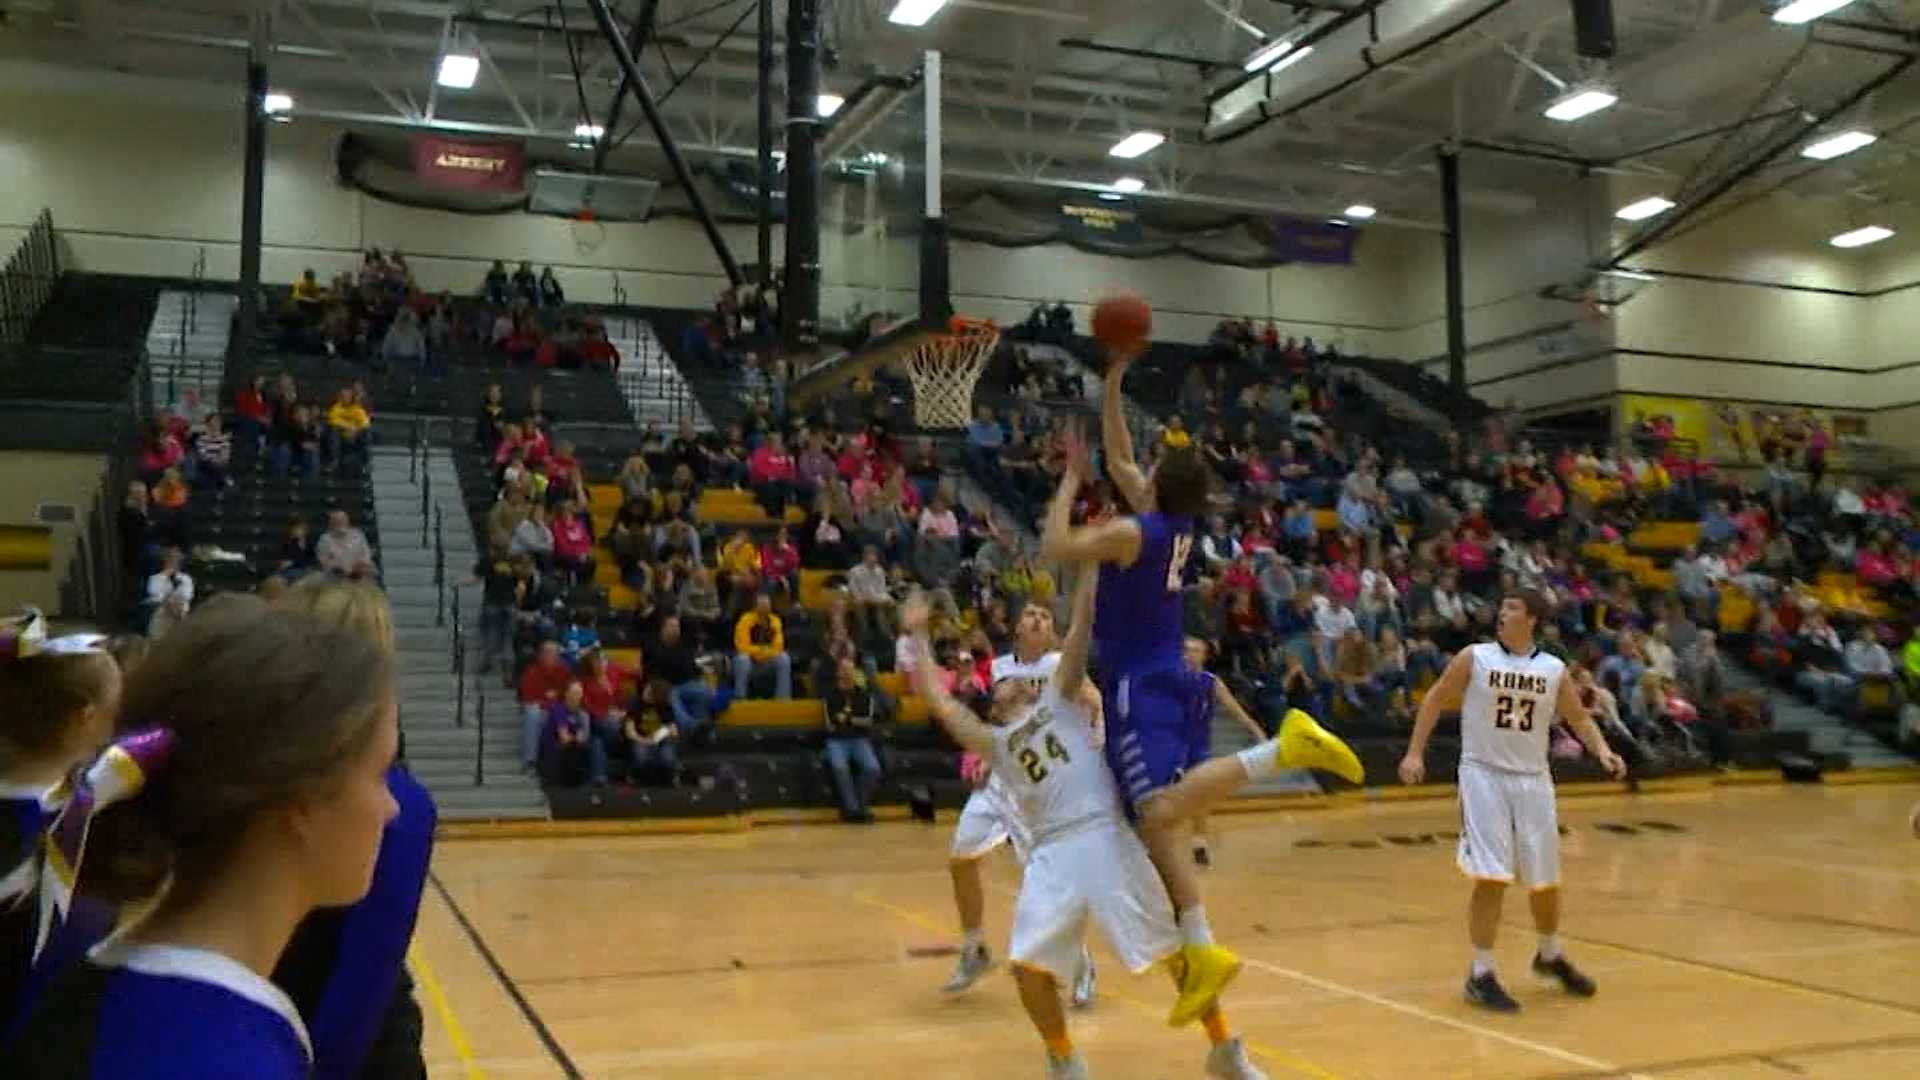 Waukee -SEP highlighted a fun night across Central Iowa